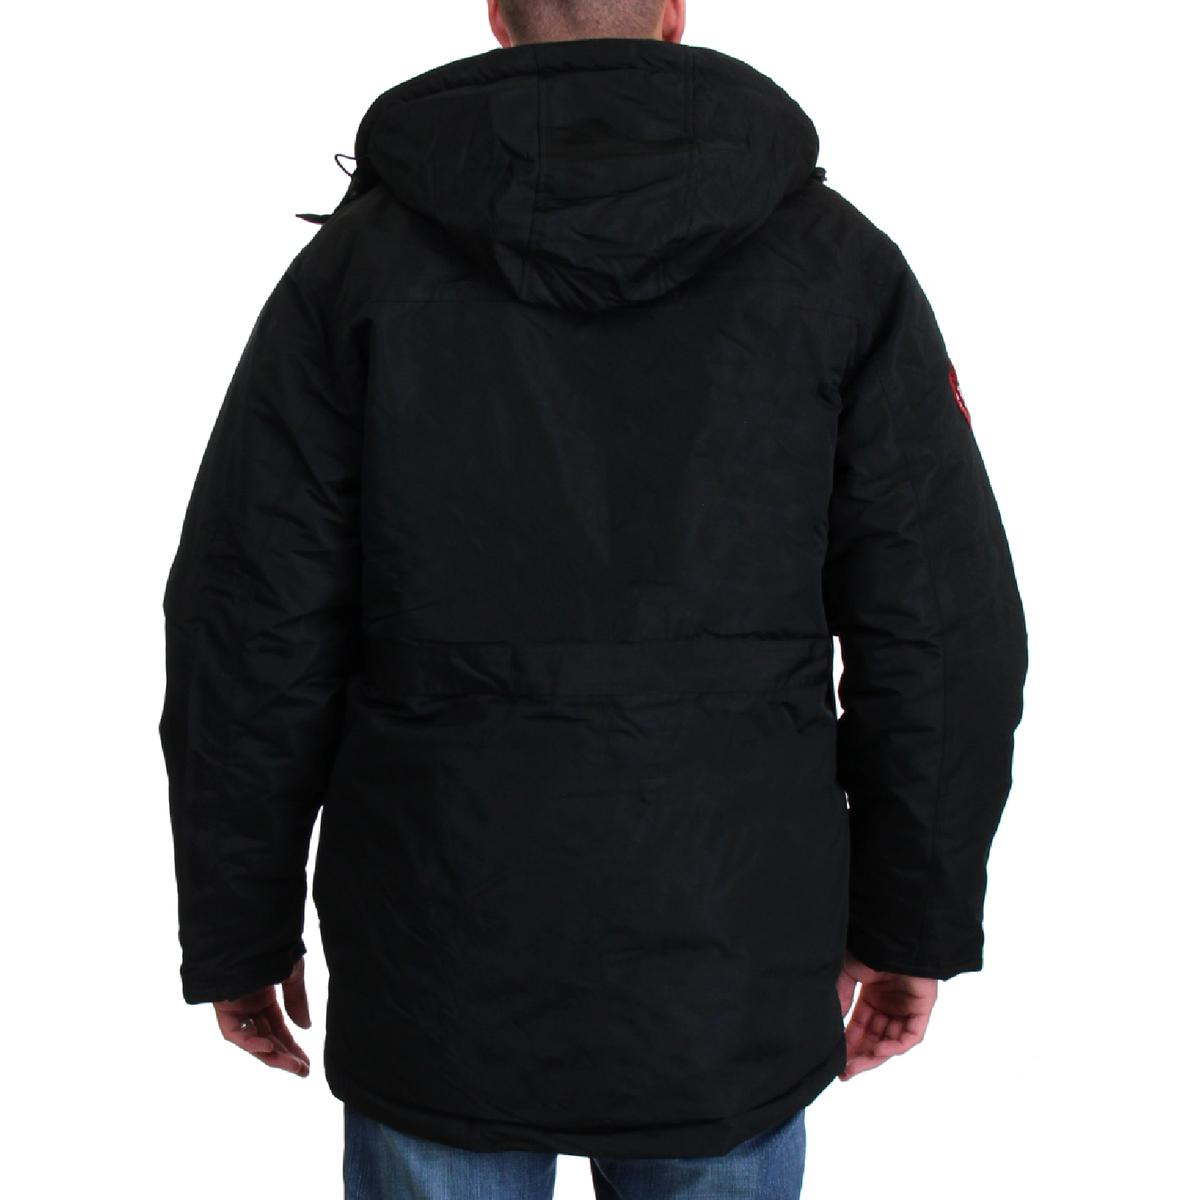 Canada-Weather-Gear-Systems-Men-039-s-Waterproof-Warm-Winter-Bib-Parka-Coat thumbnail 8